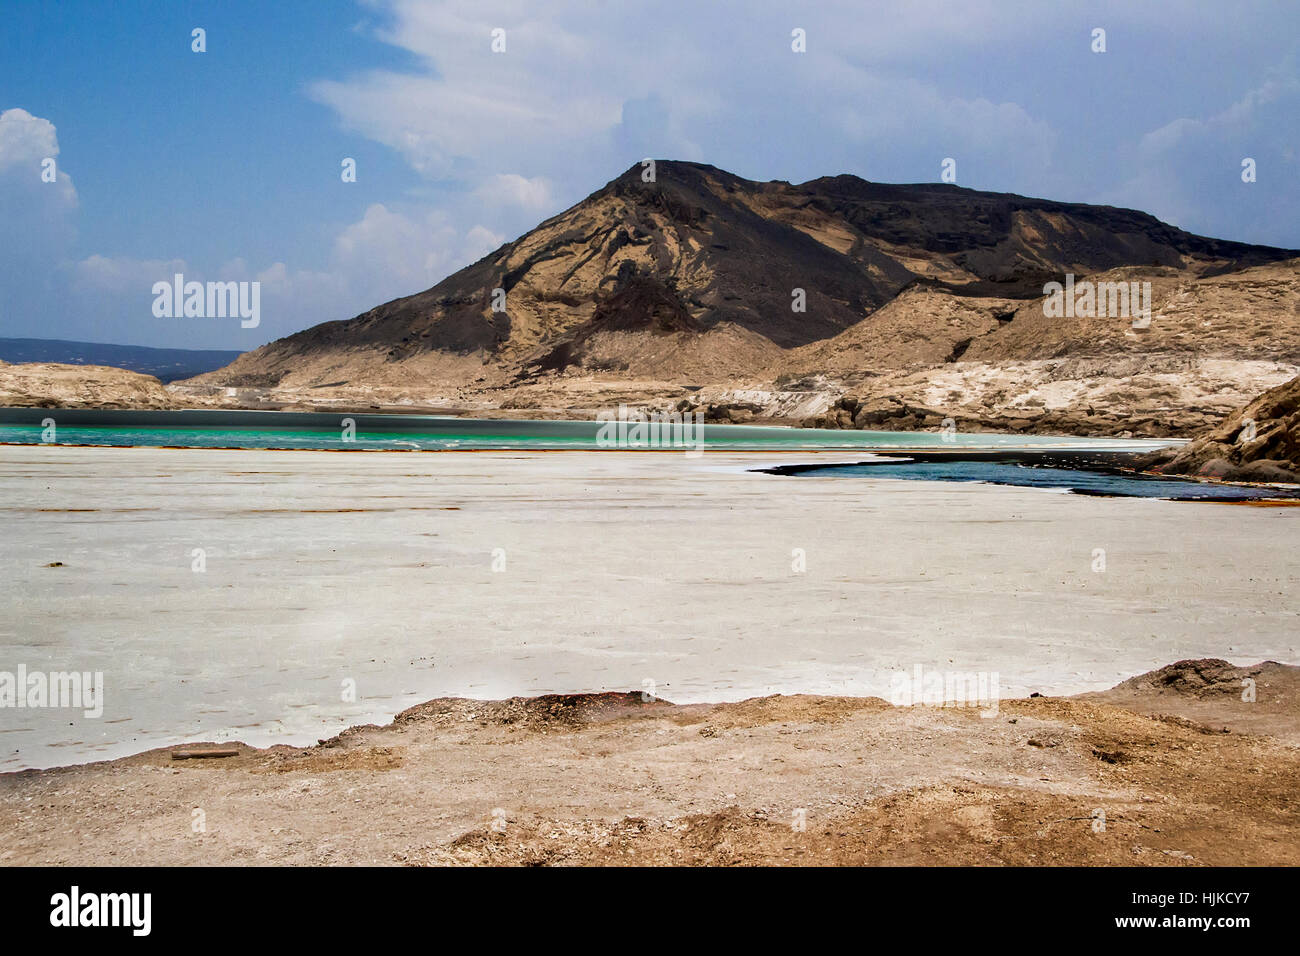 Lac Assal, Djibouti Africa | Salt water lake in Djibouti East Africa - Stock Image